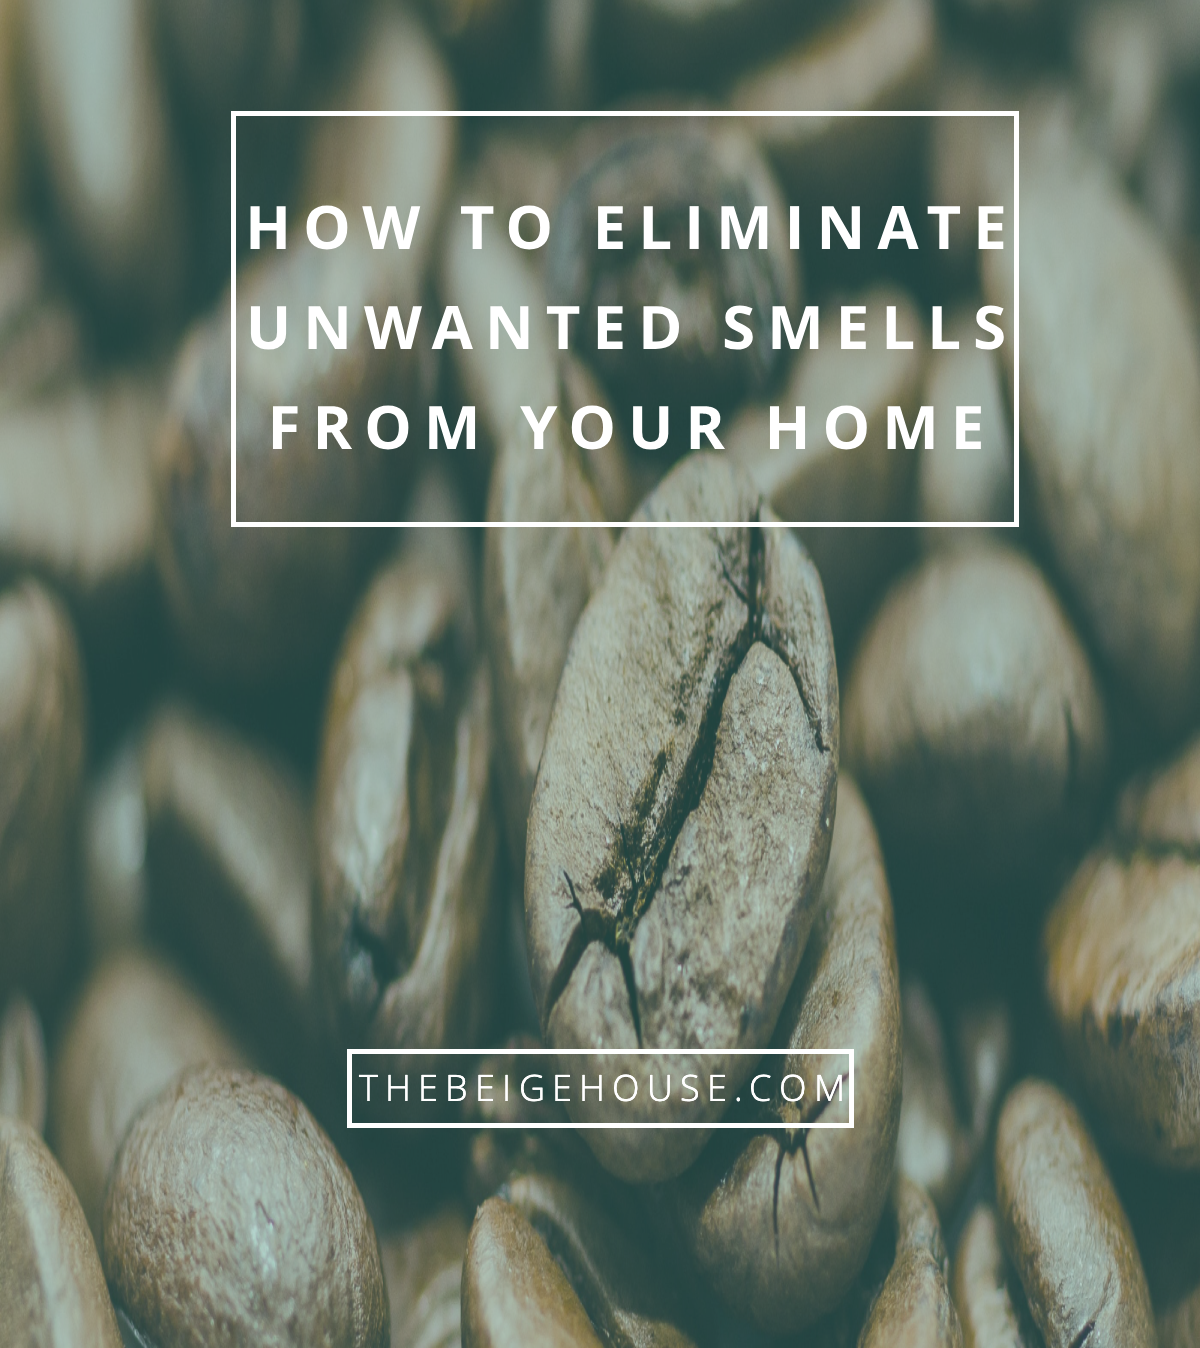 How To Eliminate Unwanted Smells From Your Home The